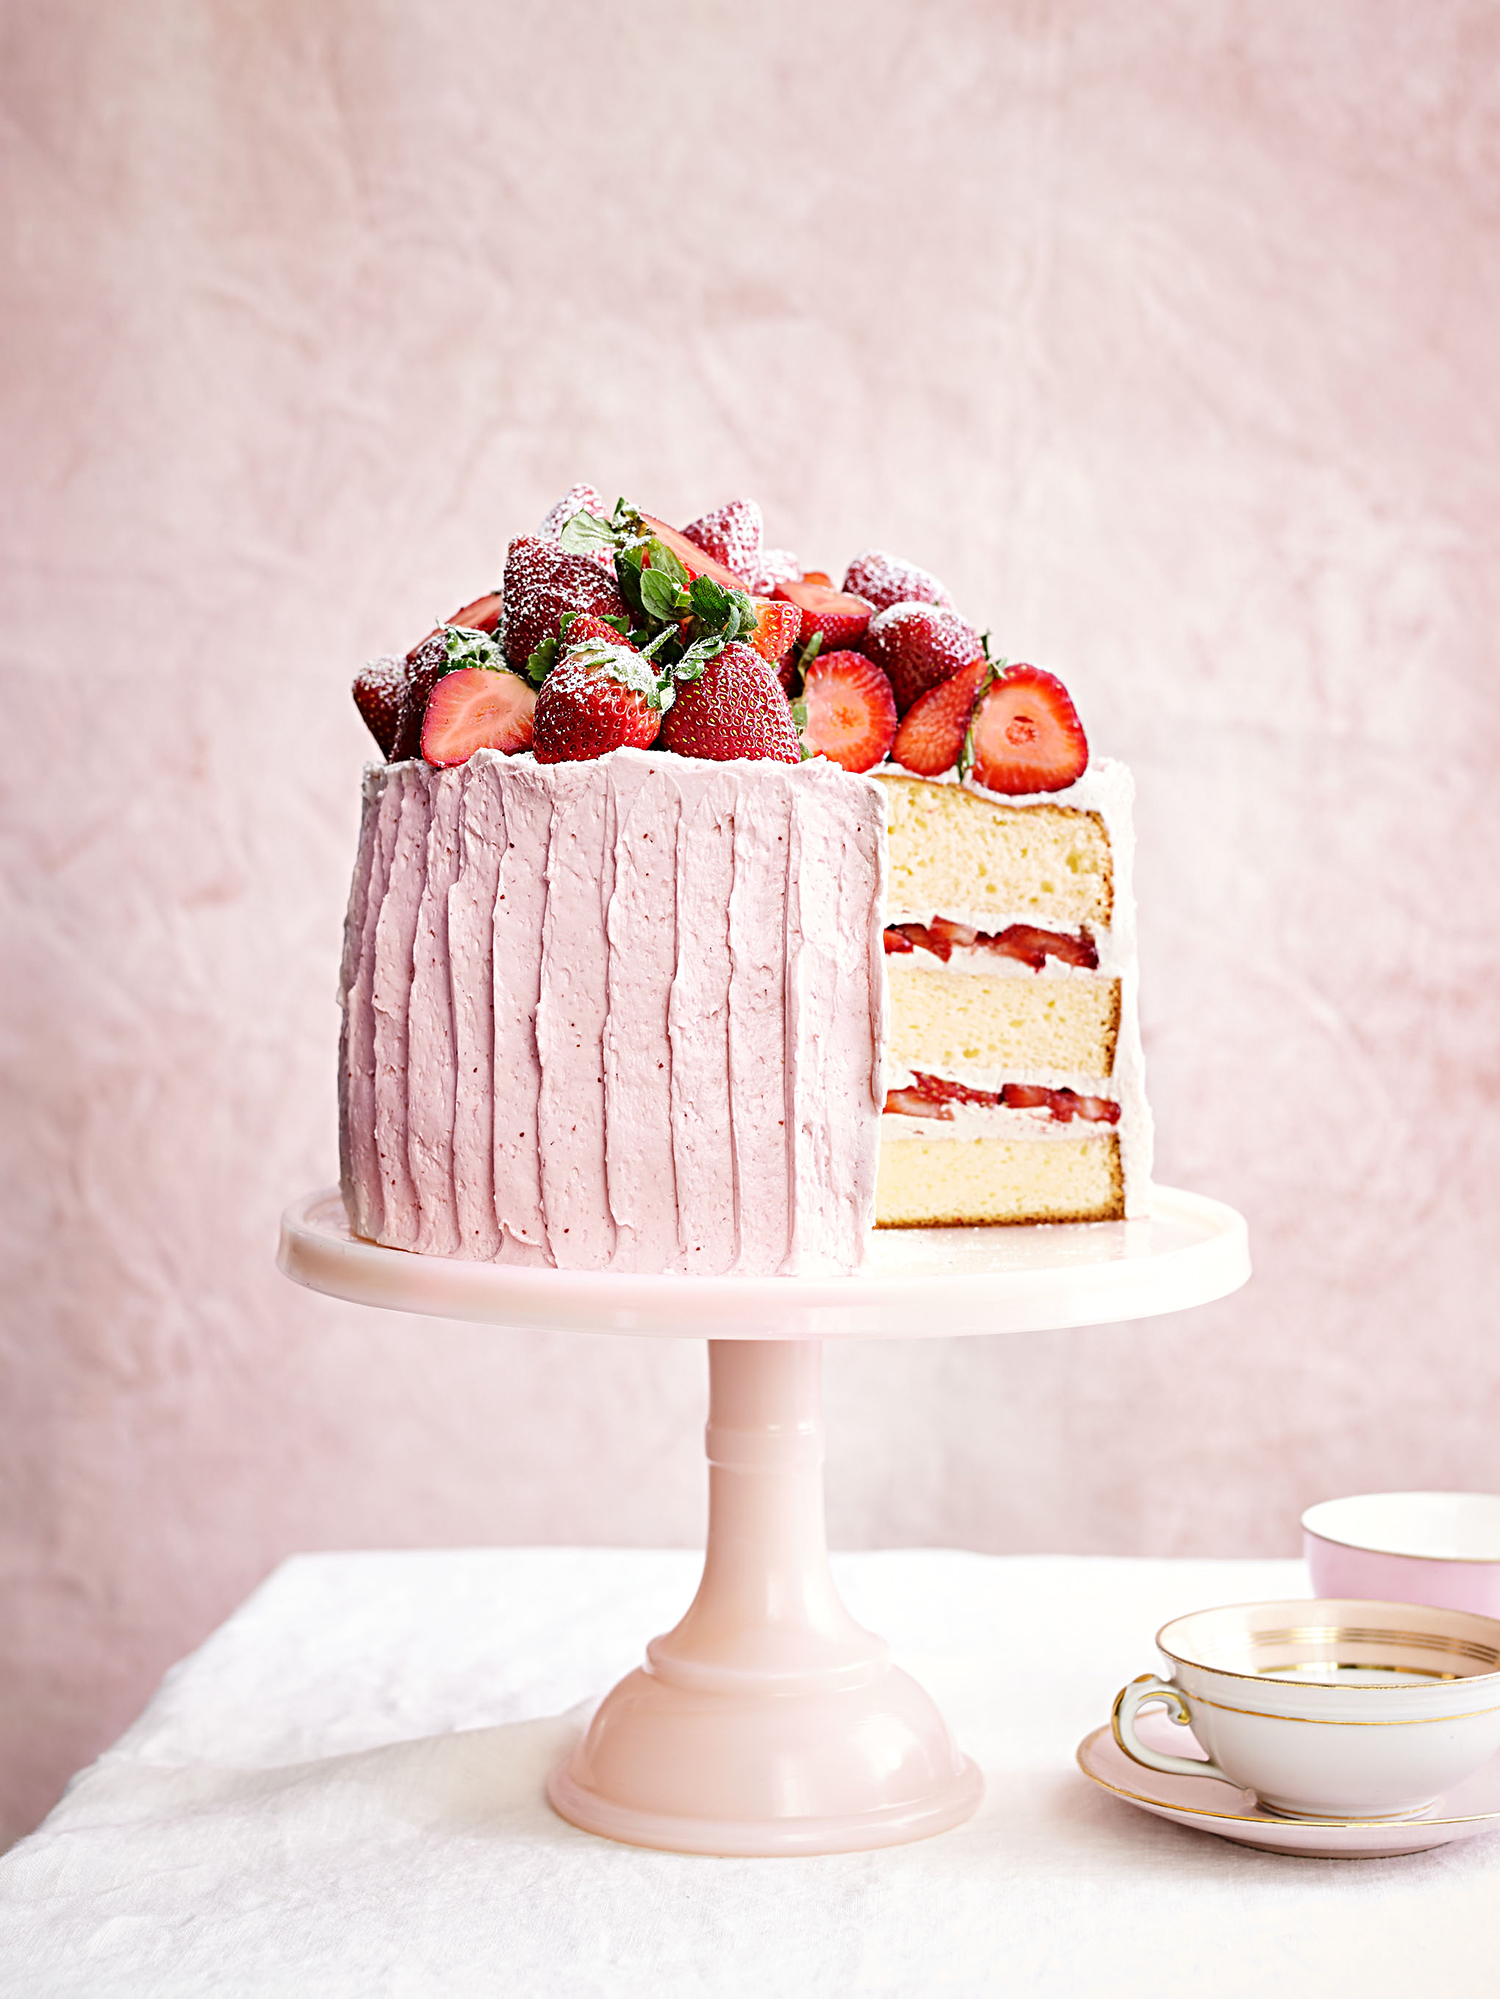 Delicious Mother's Day Desserts Your Mom Will Love